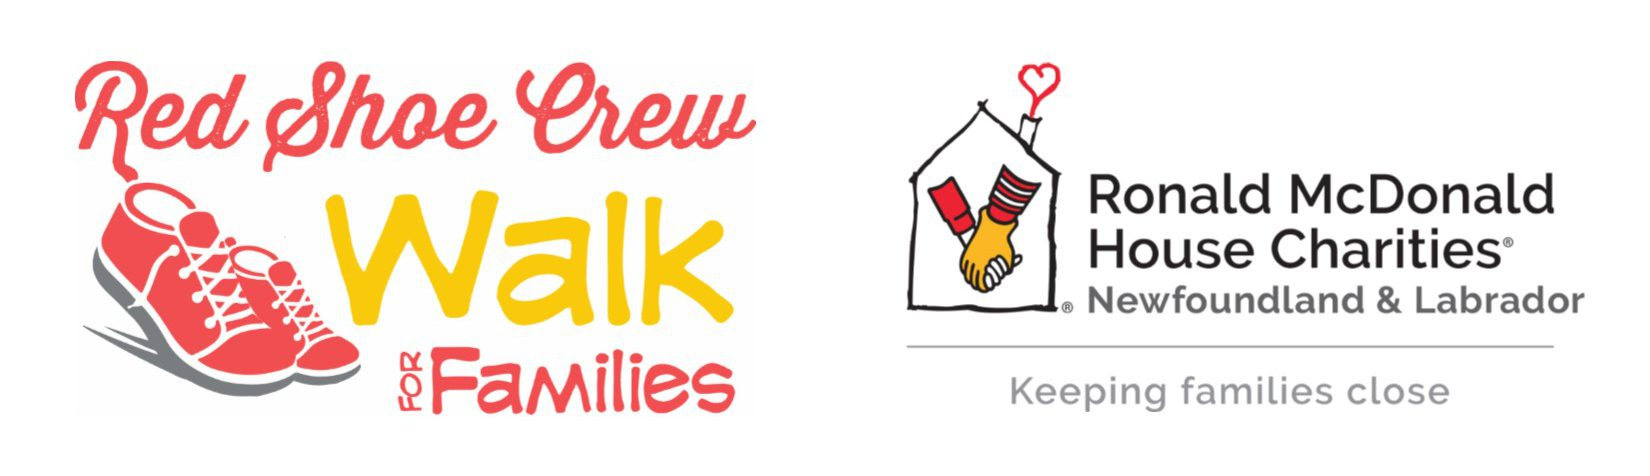 Red Shoe Crew – Walk for Families